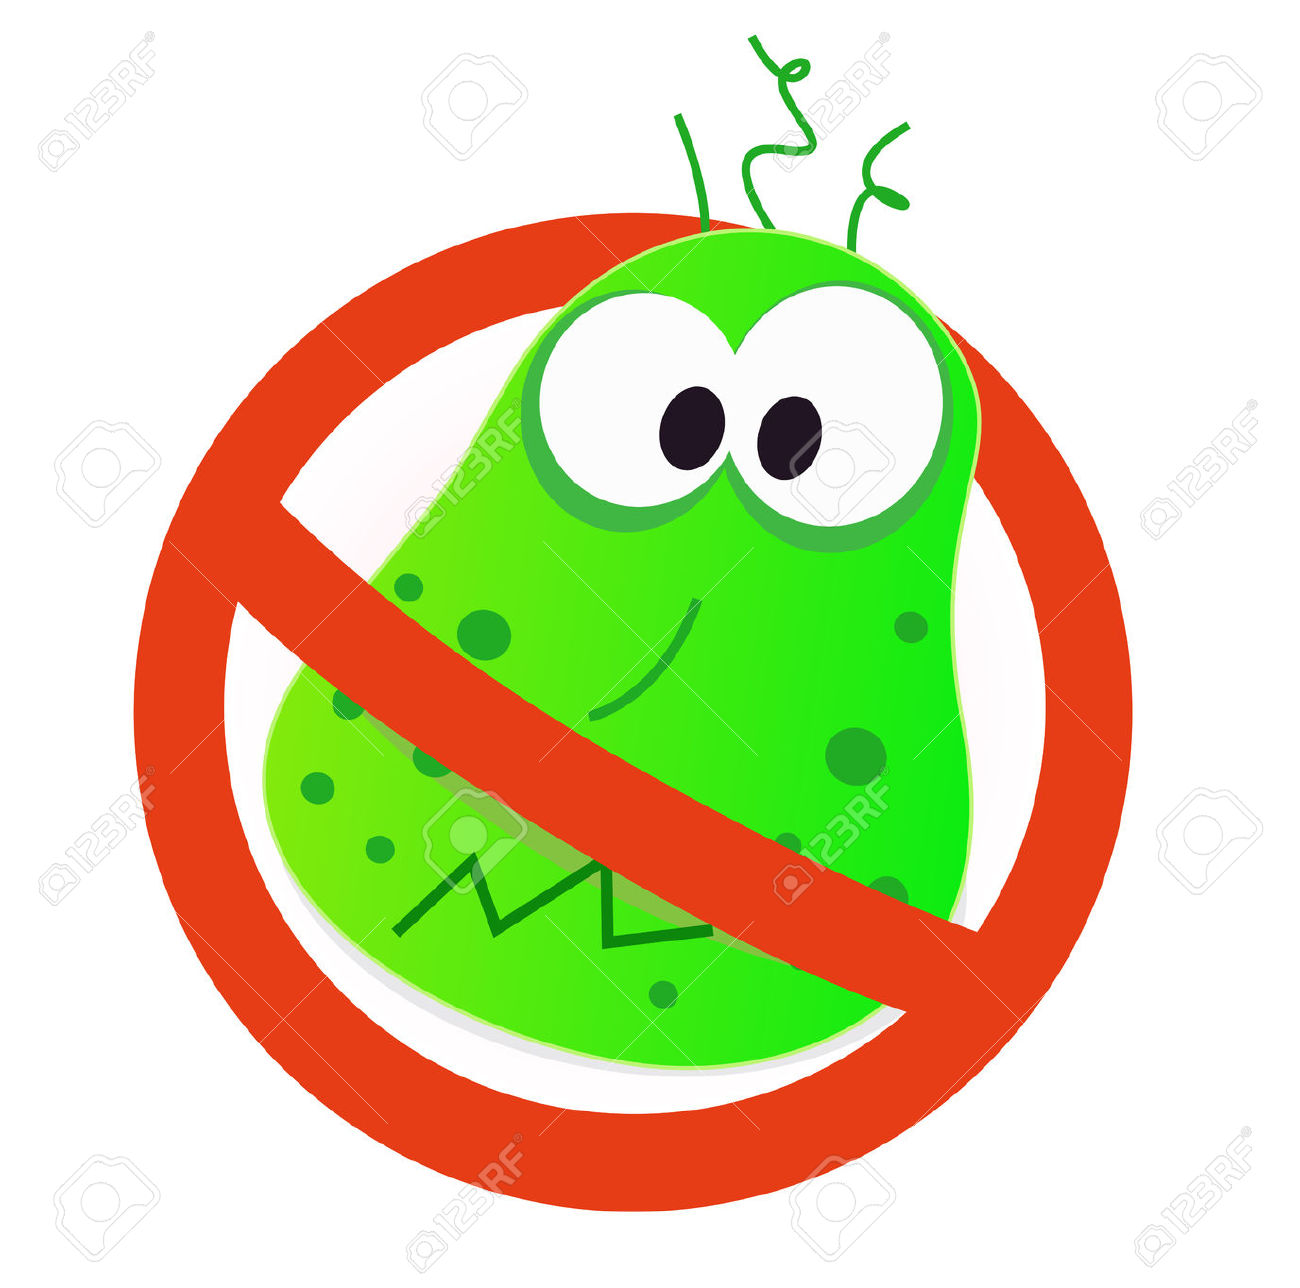 Stop Germs Vaccine Clipart-Stop Germs Vaccine Clipart-13